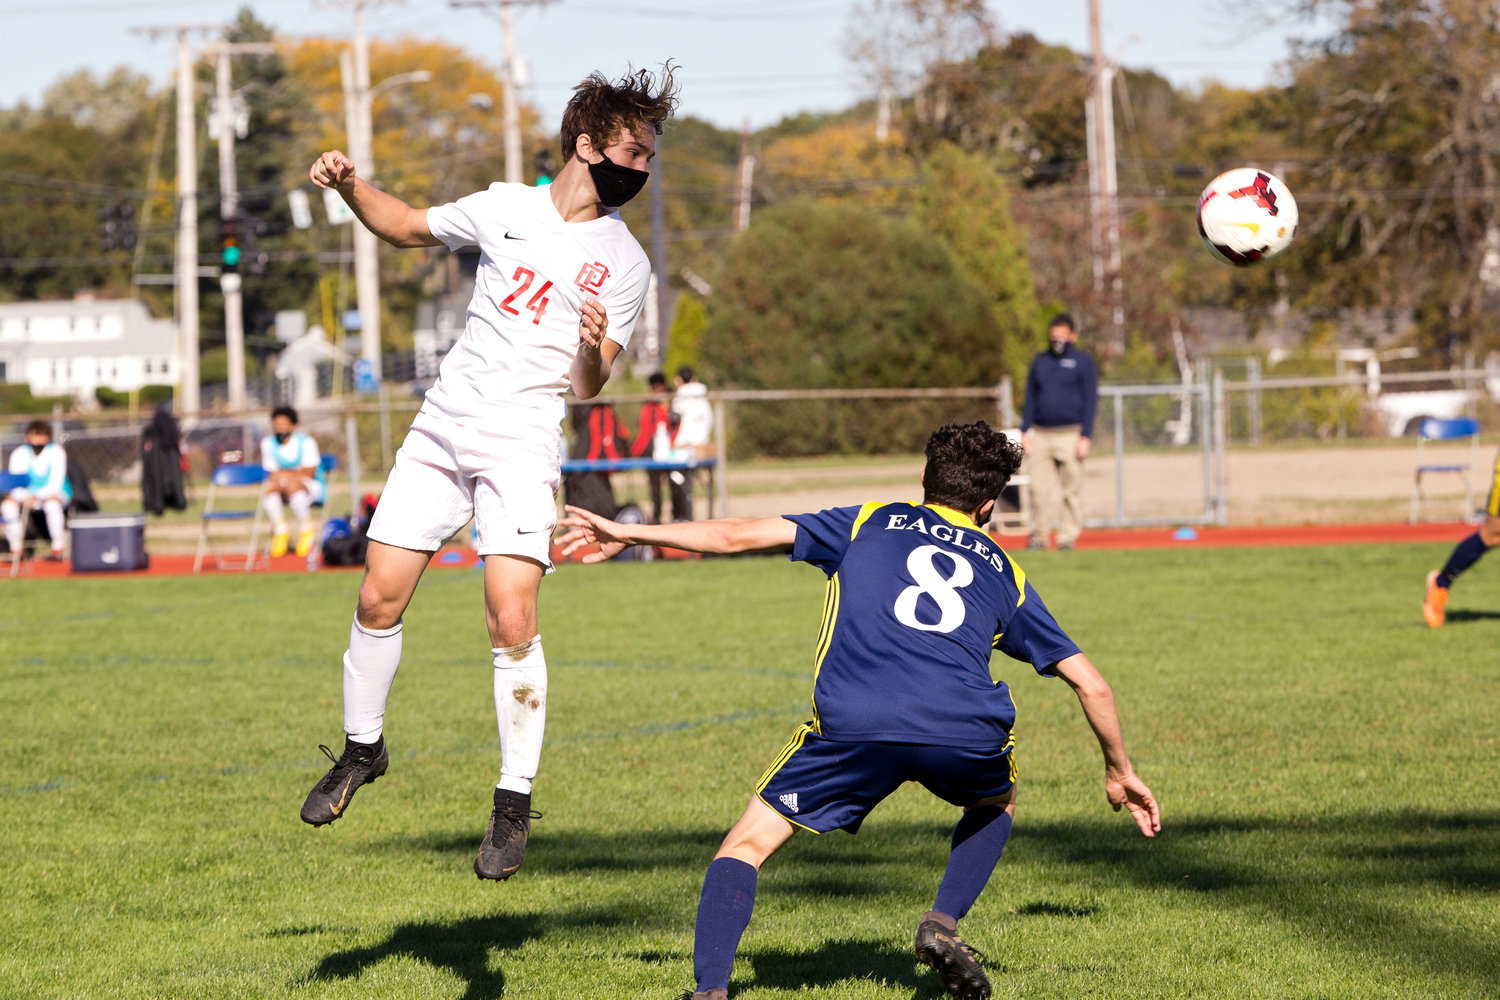 Andrew Jackson heads the ball over a Barrington opponent.